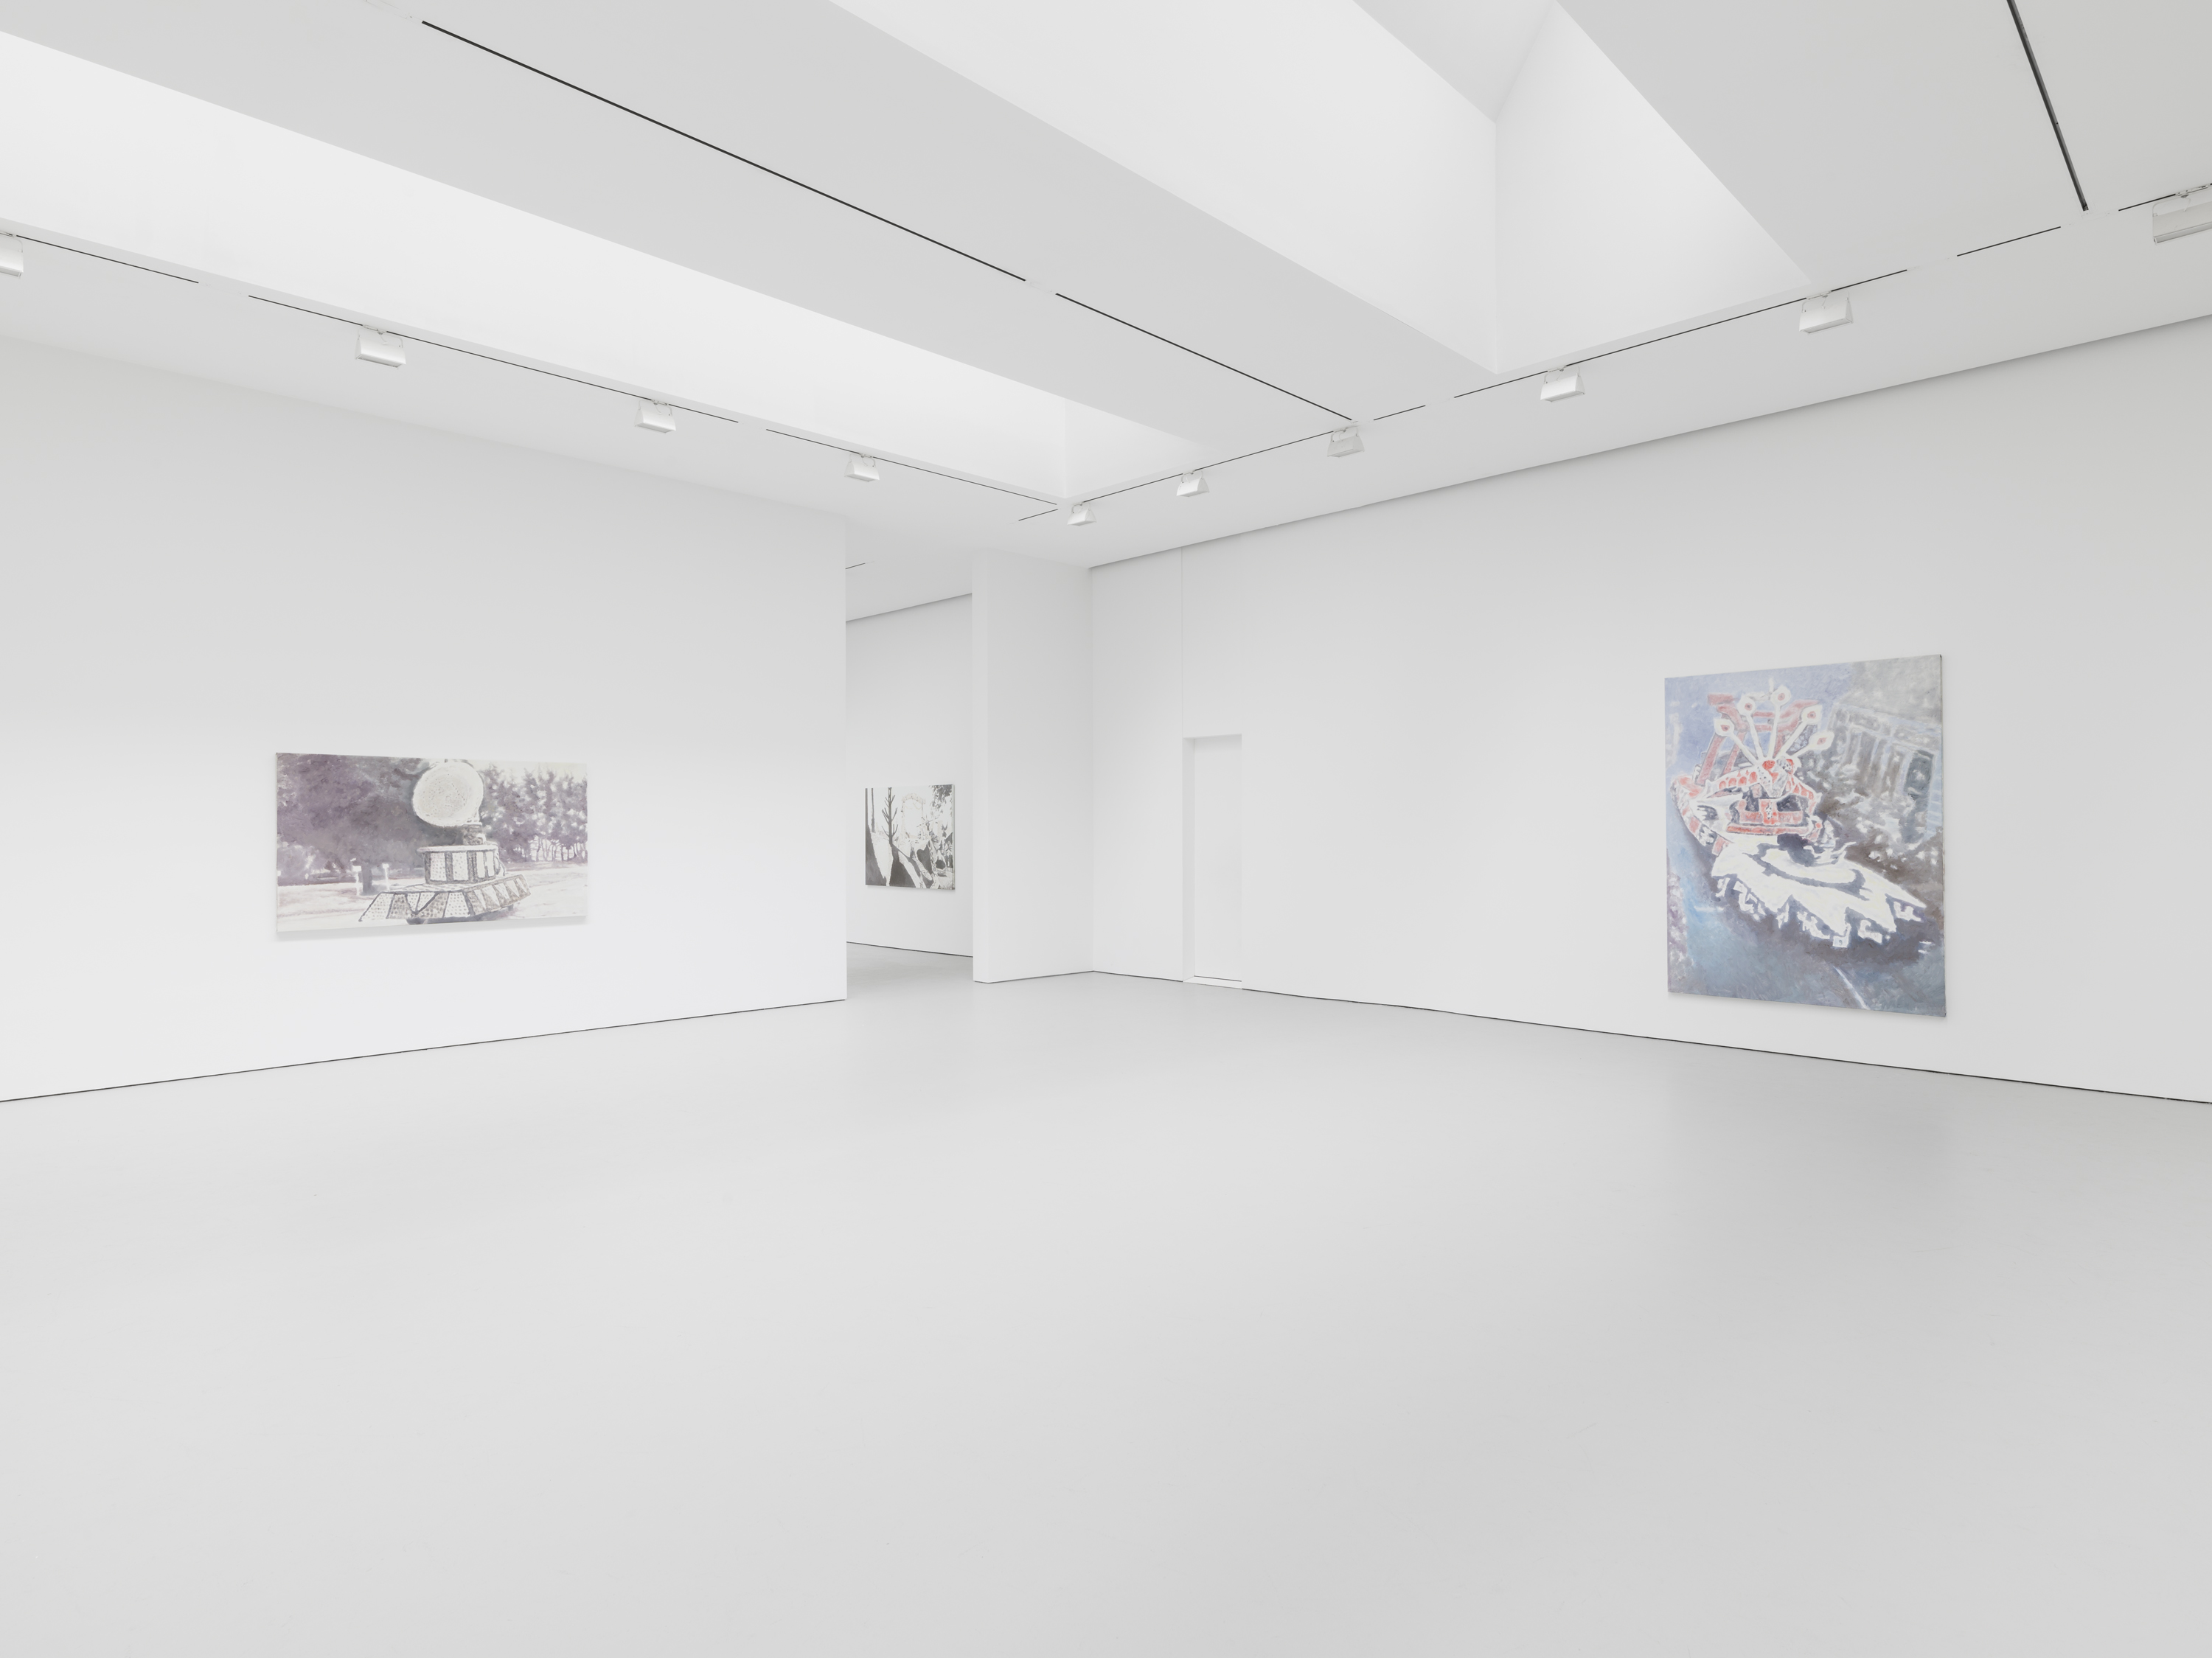 Image: Luc Tuymans, Exhibition view from the 2016 solo exhibition Le Mépris at David Zwirner, New York. Courtesy David Zwirner, New York/London.